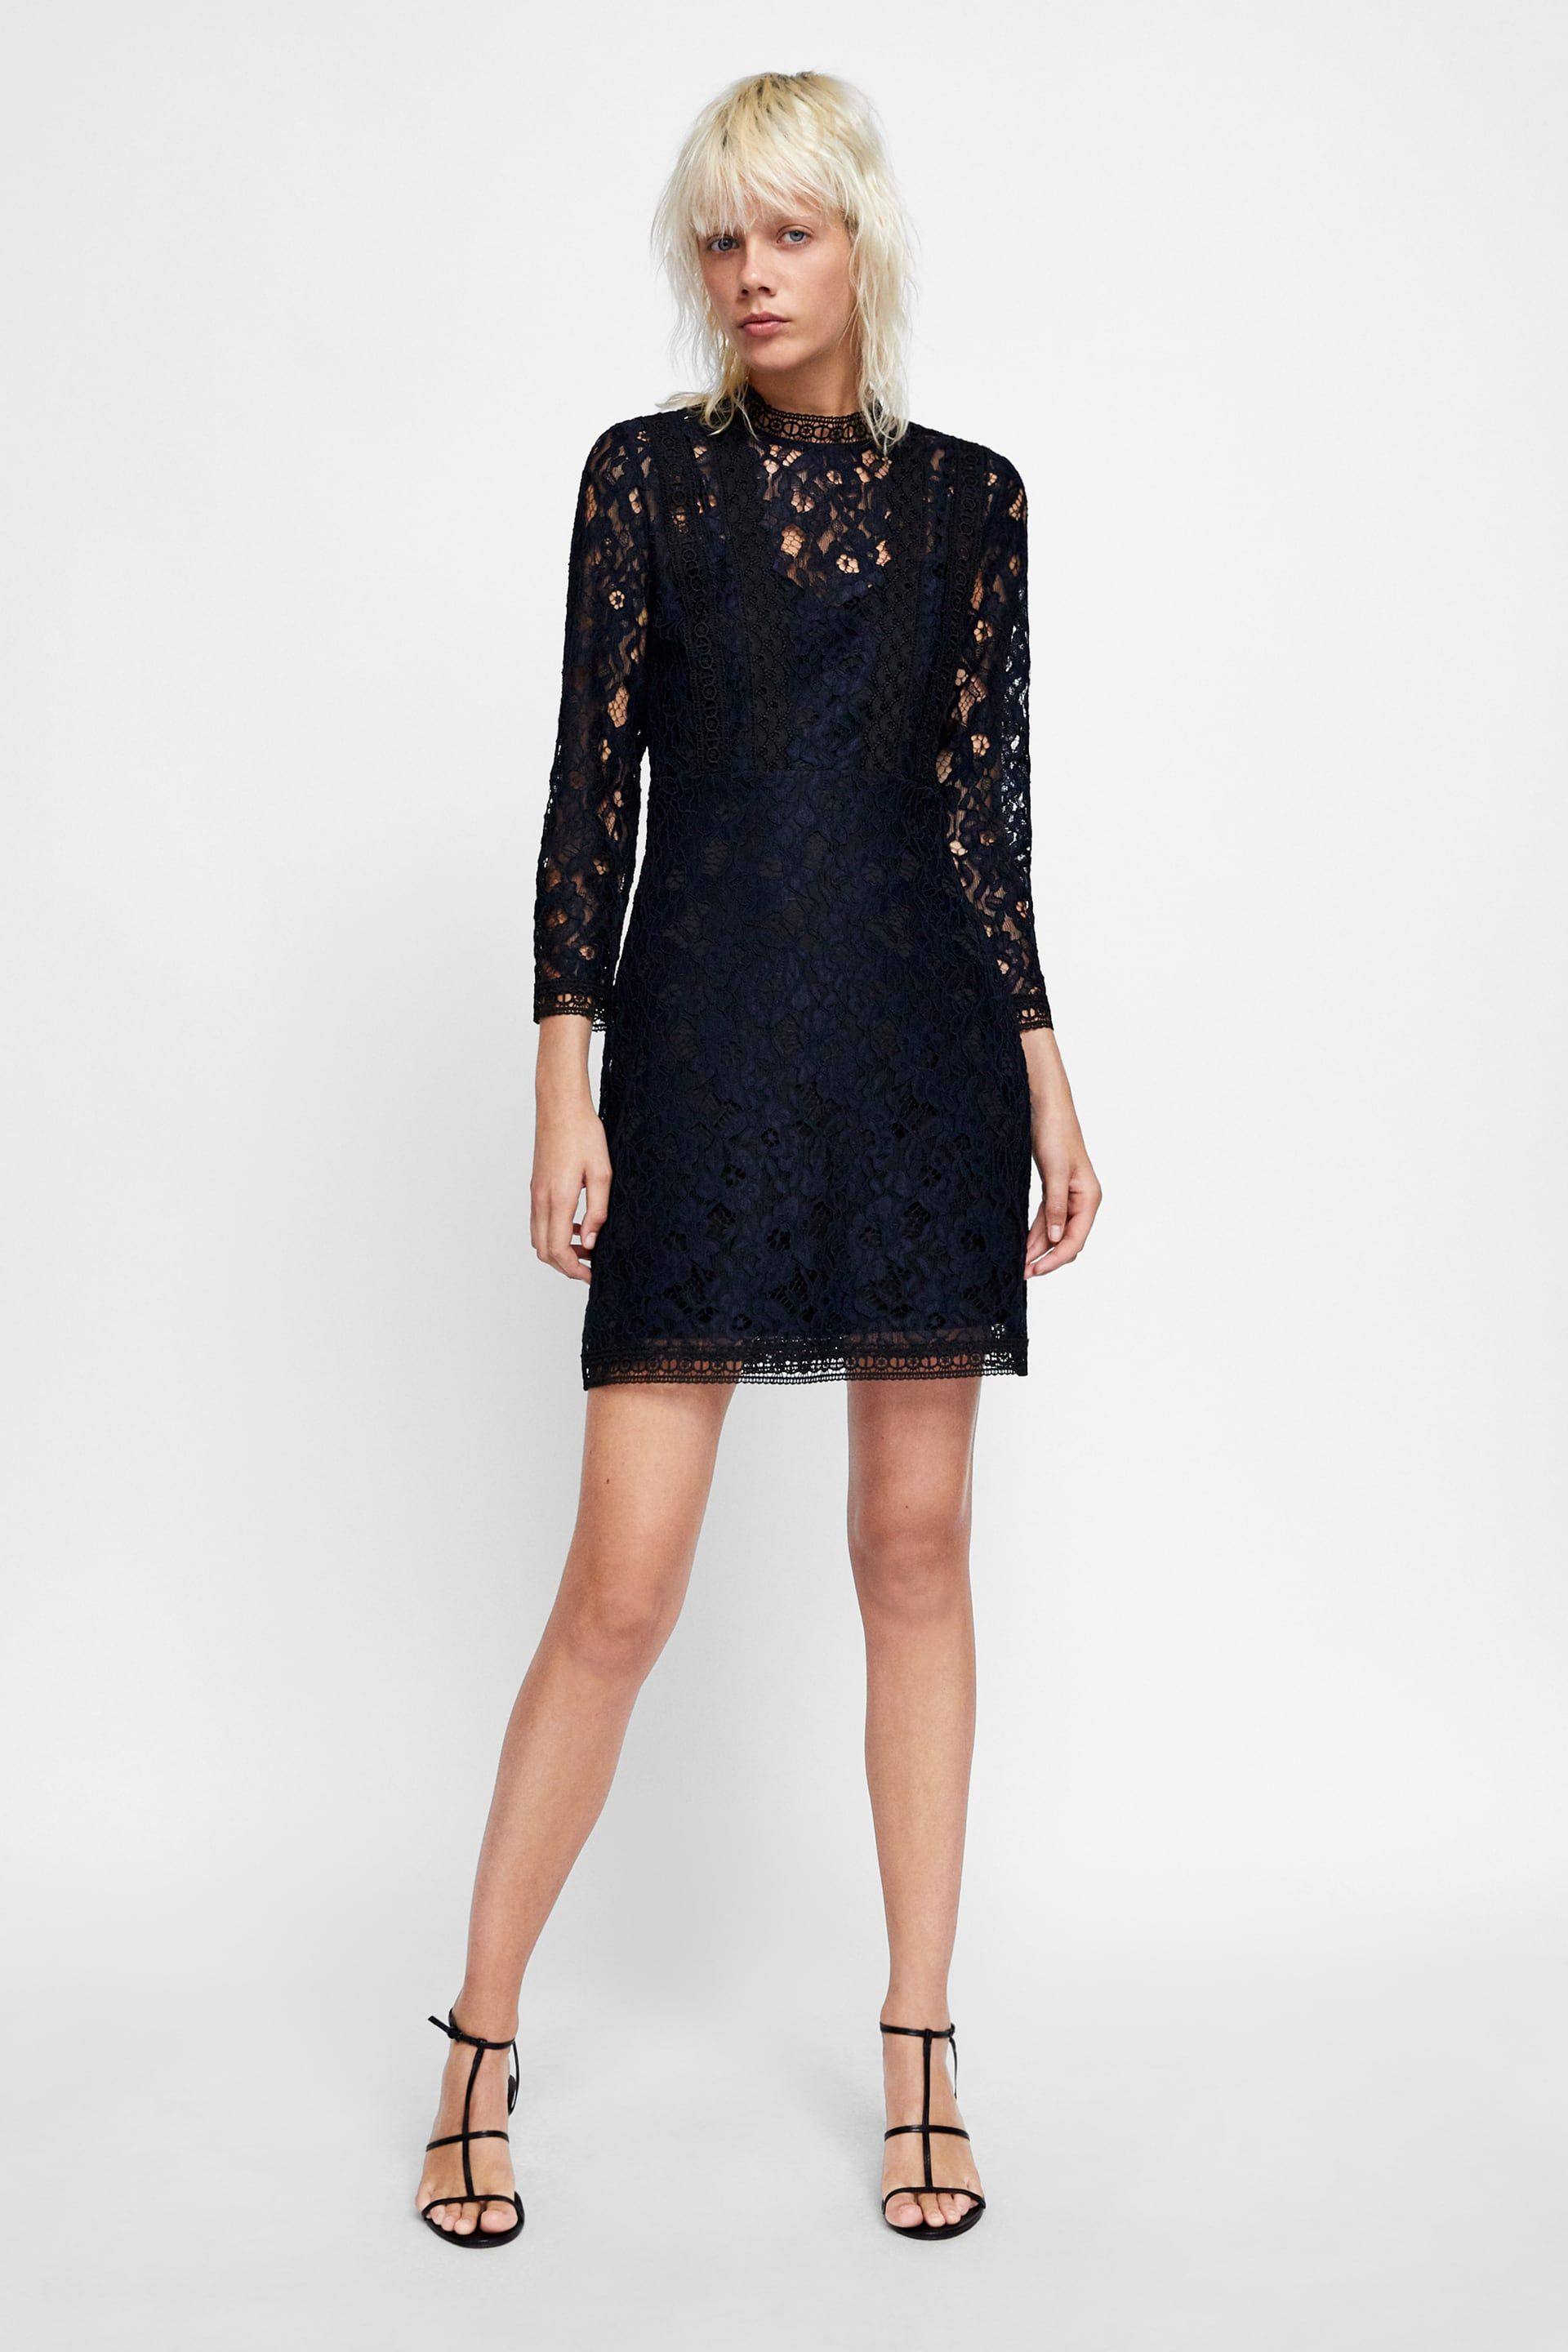 Pin By Angie Kloppmann On Style Inspiration Lace Dress High Collar Dress Dresses [ 2880 x 1920 Pixel ]